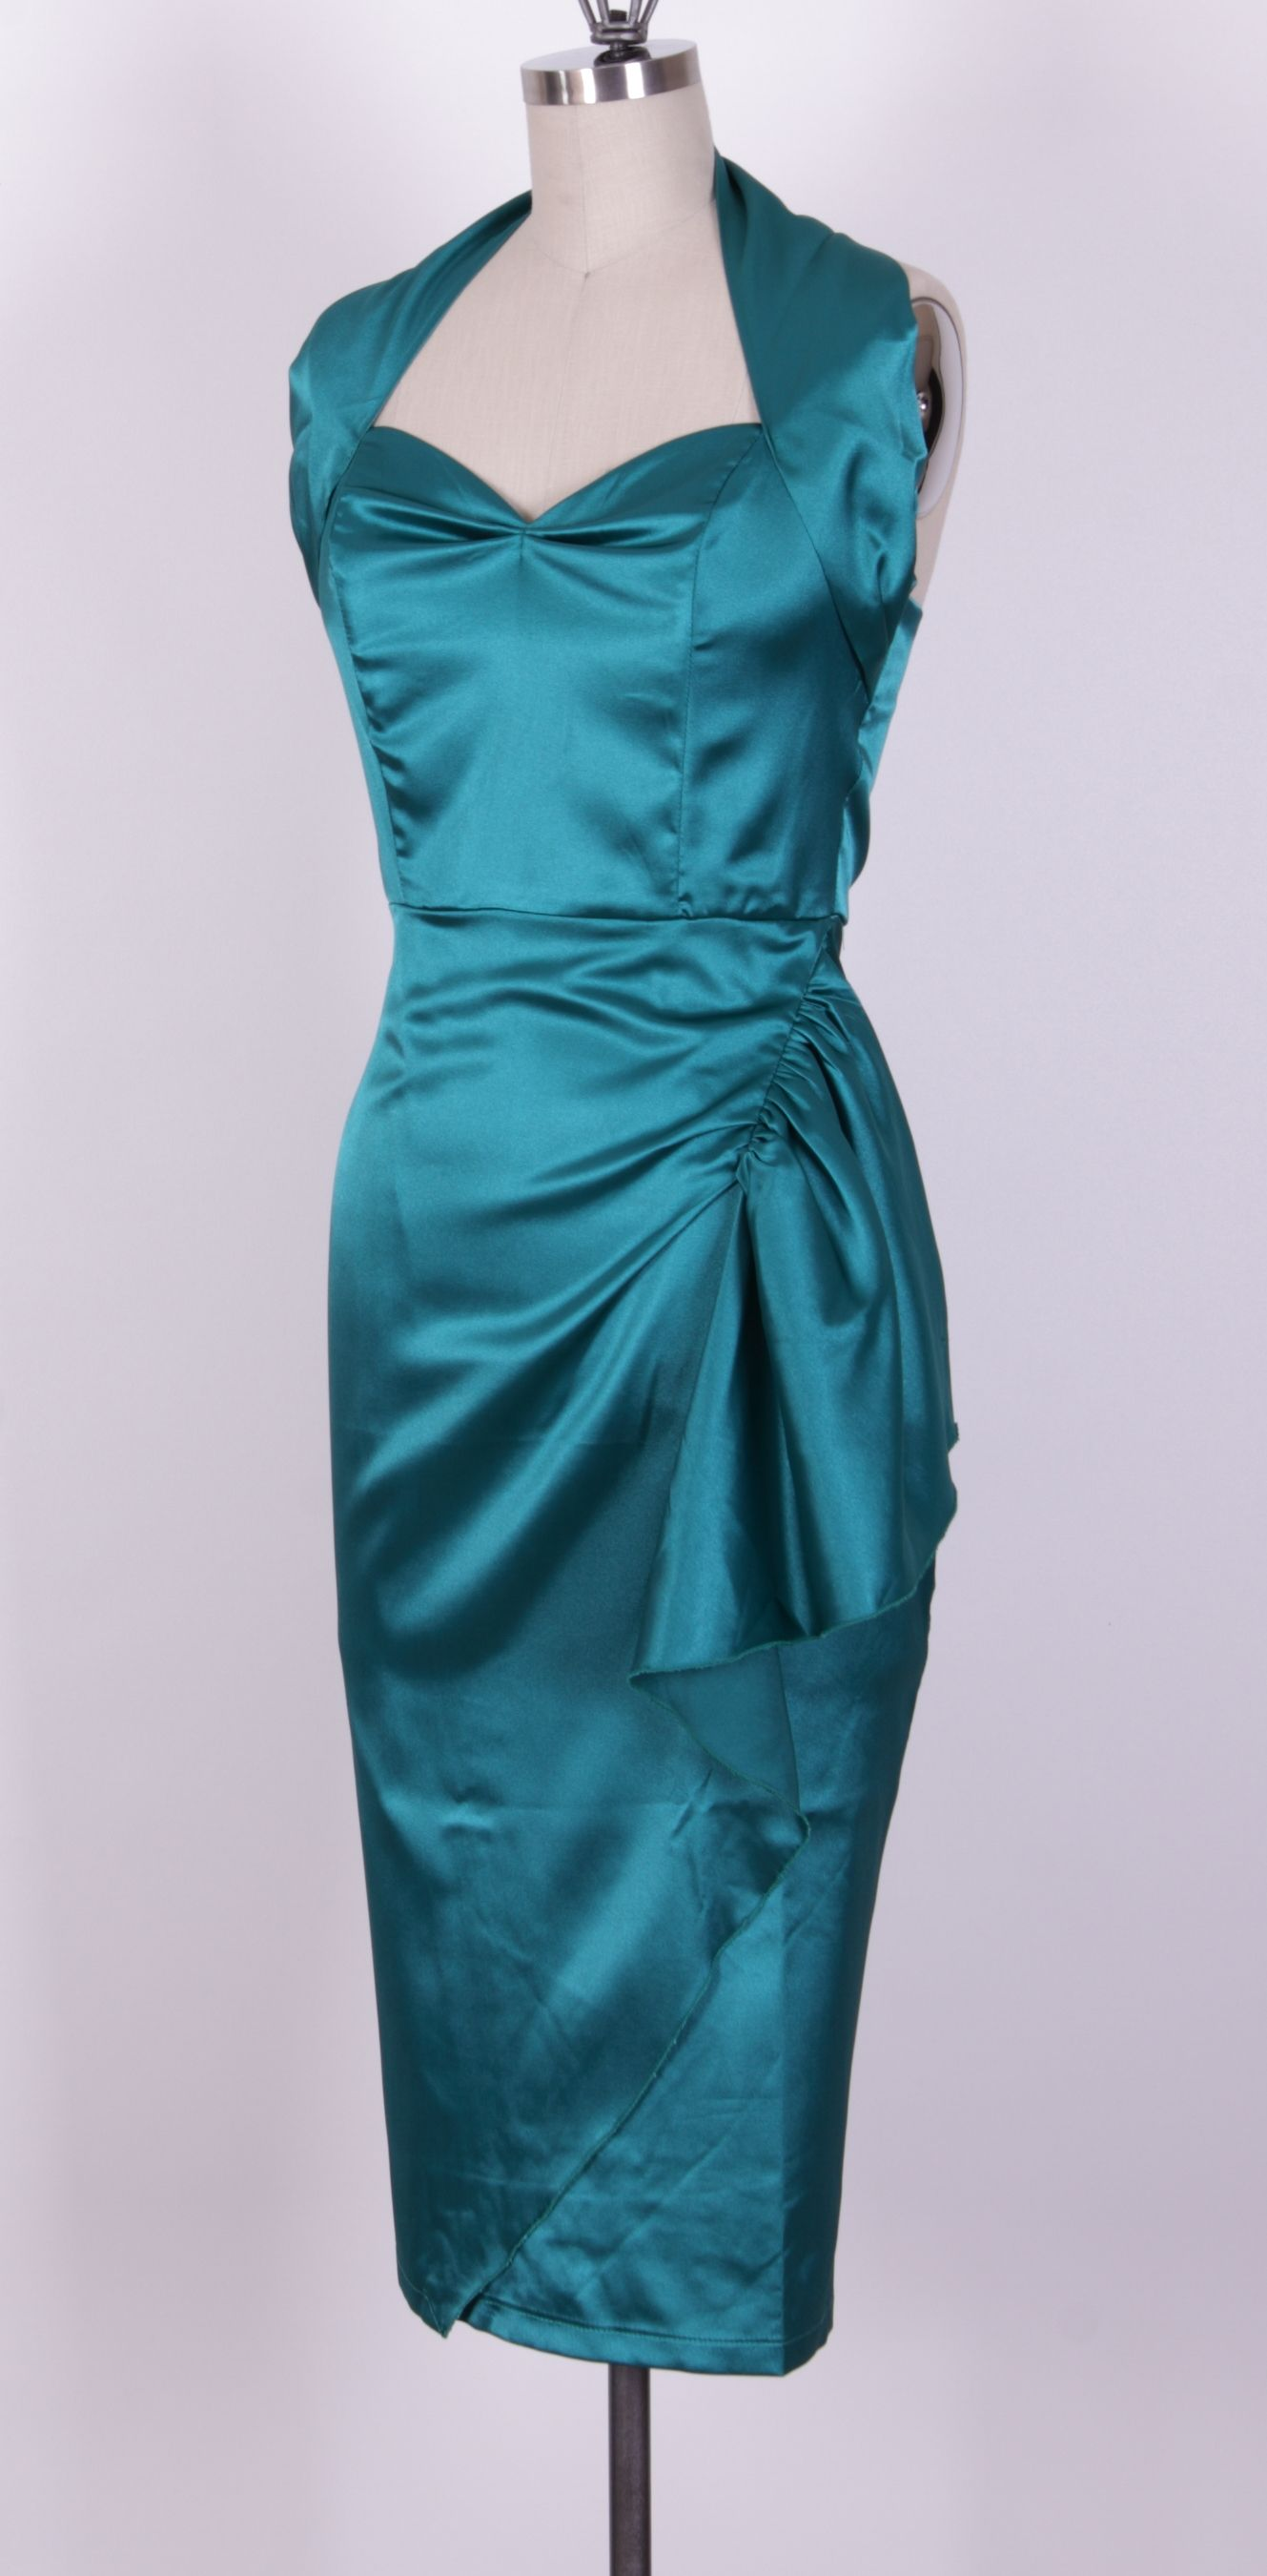 black and teal bridesmaid dresses | 1950s Dresses : Queen of ...